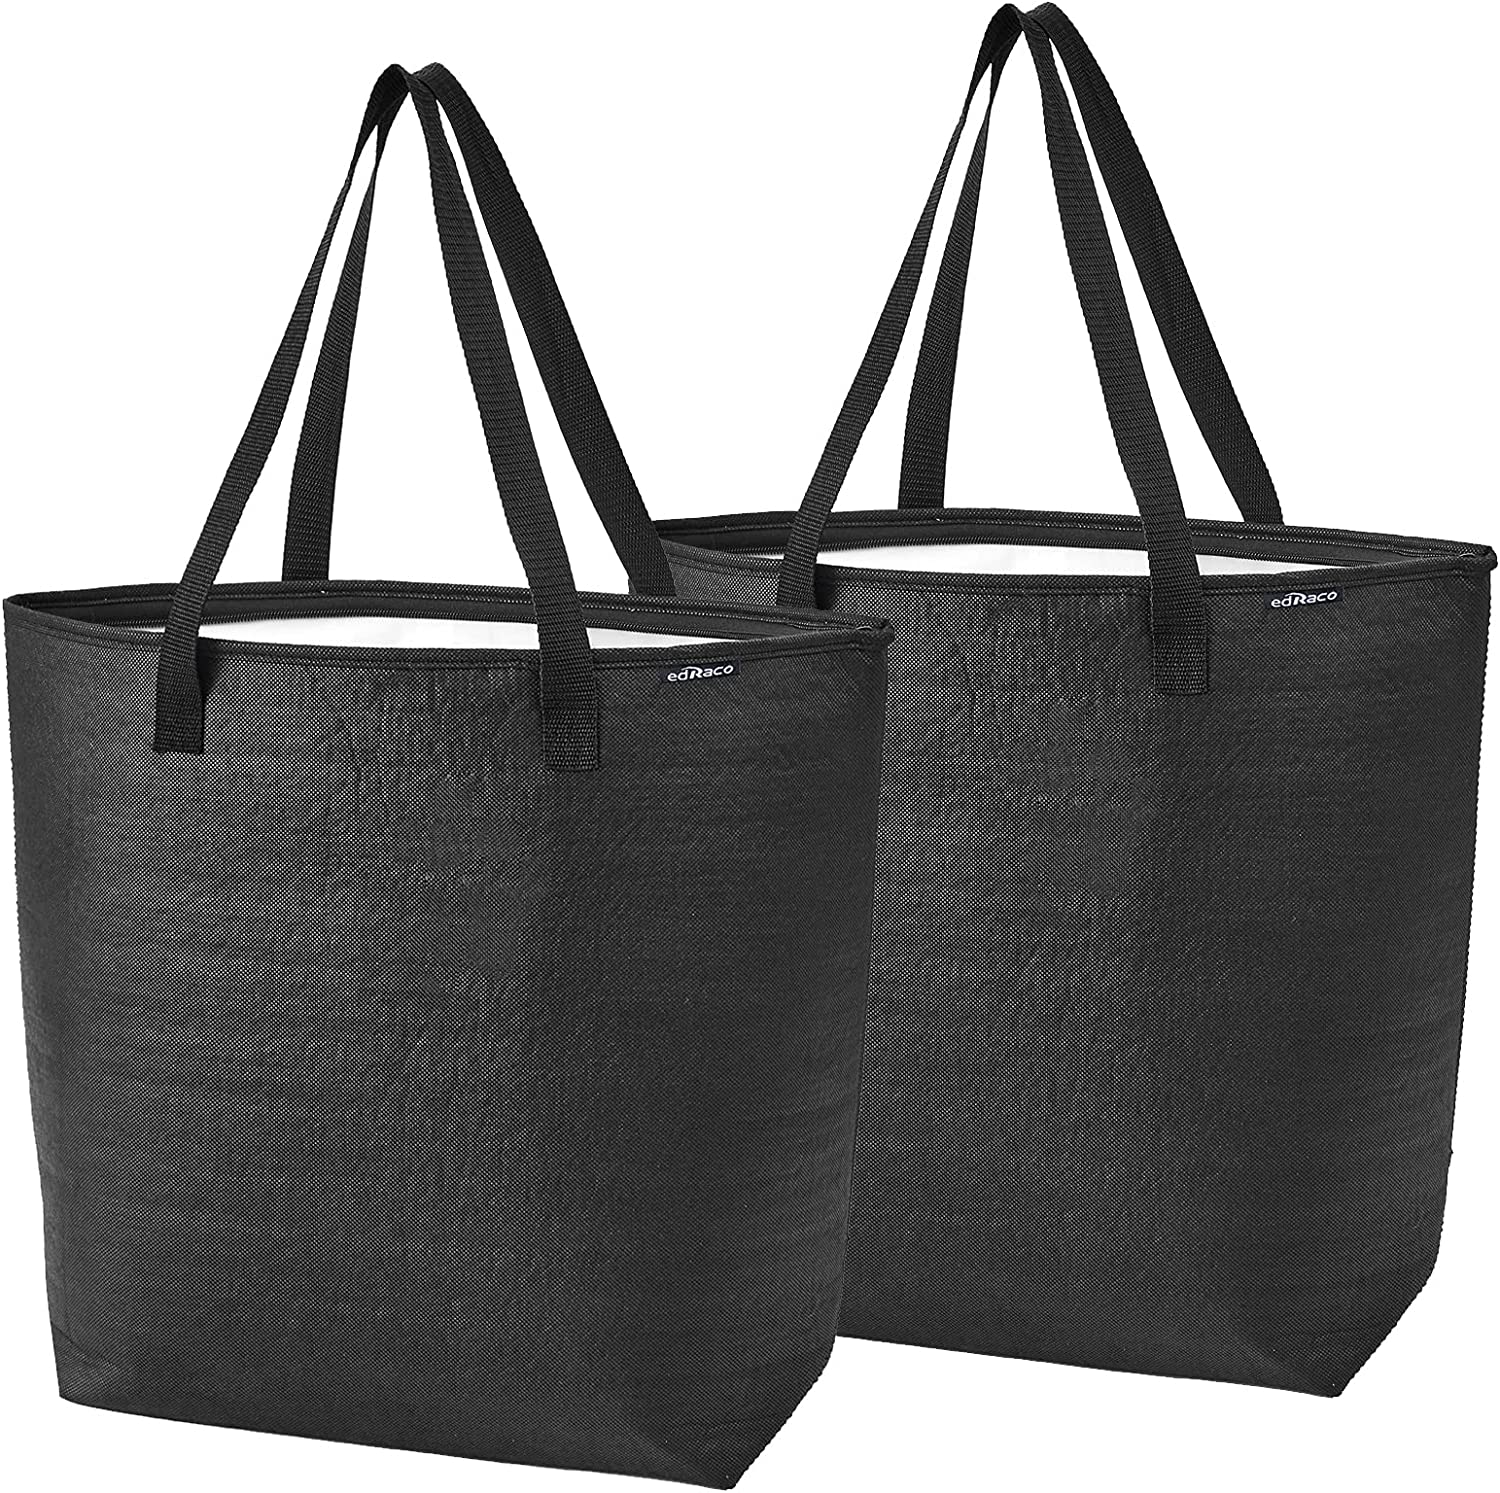 Insulated Reusable Grocery Bags 2 Japan's largest assortment Leakproof Tote Pack Special price for a limited time Shopping